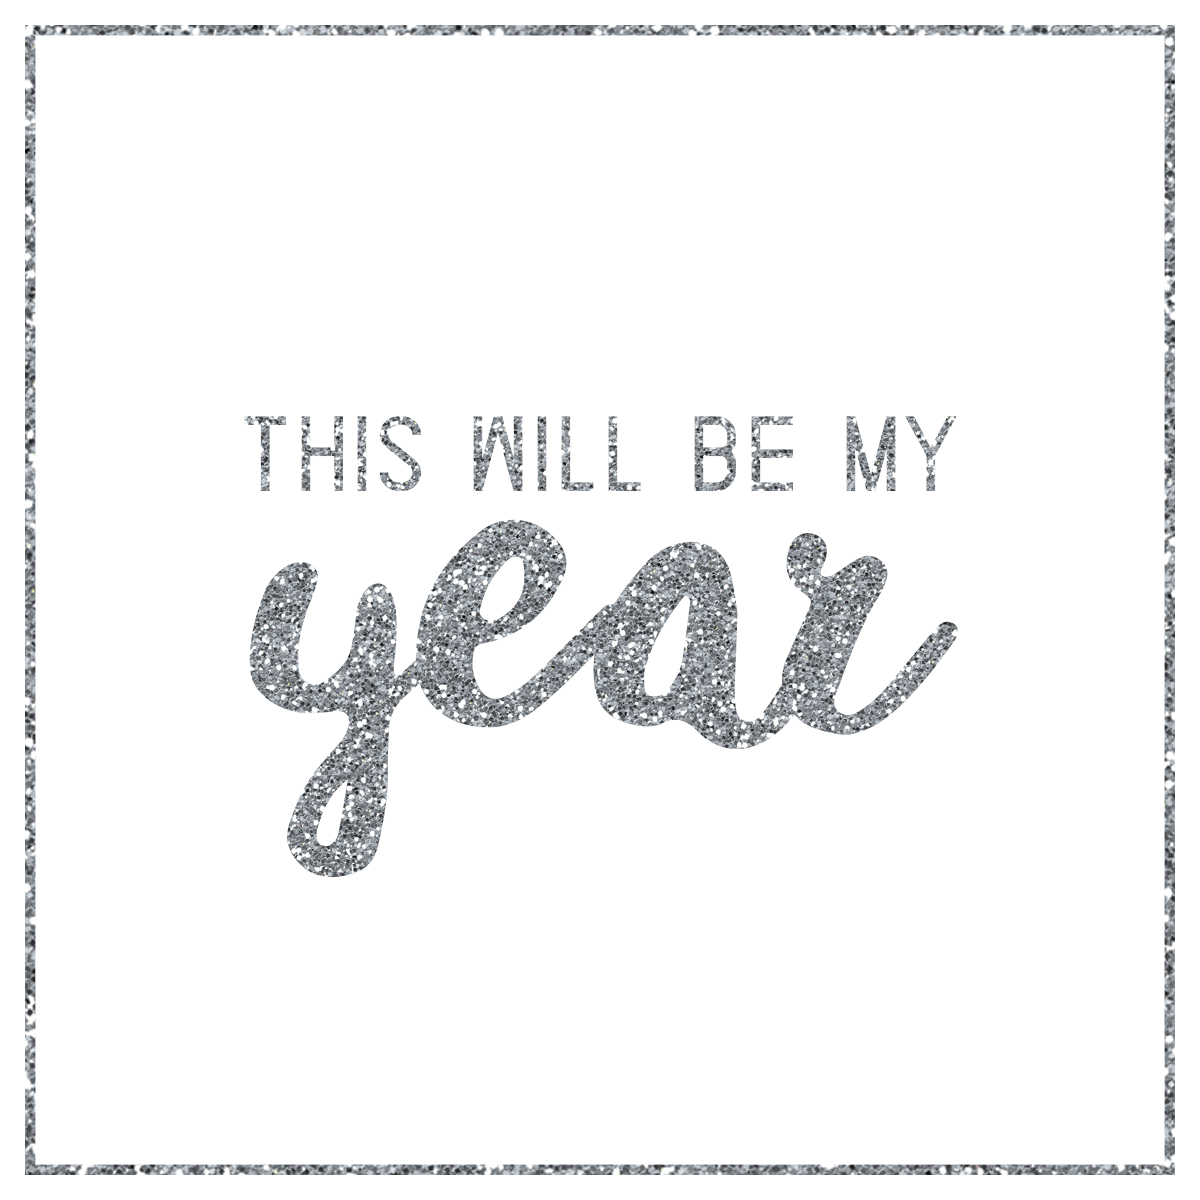 Last year was your year and so will this new year! #inspiration #walkonwaterboutiques